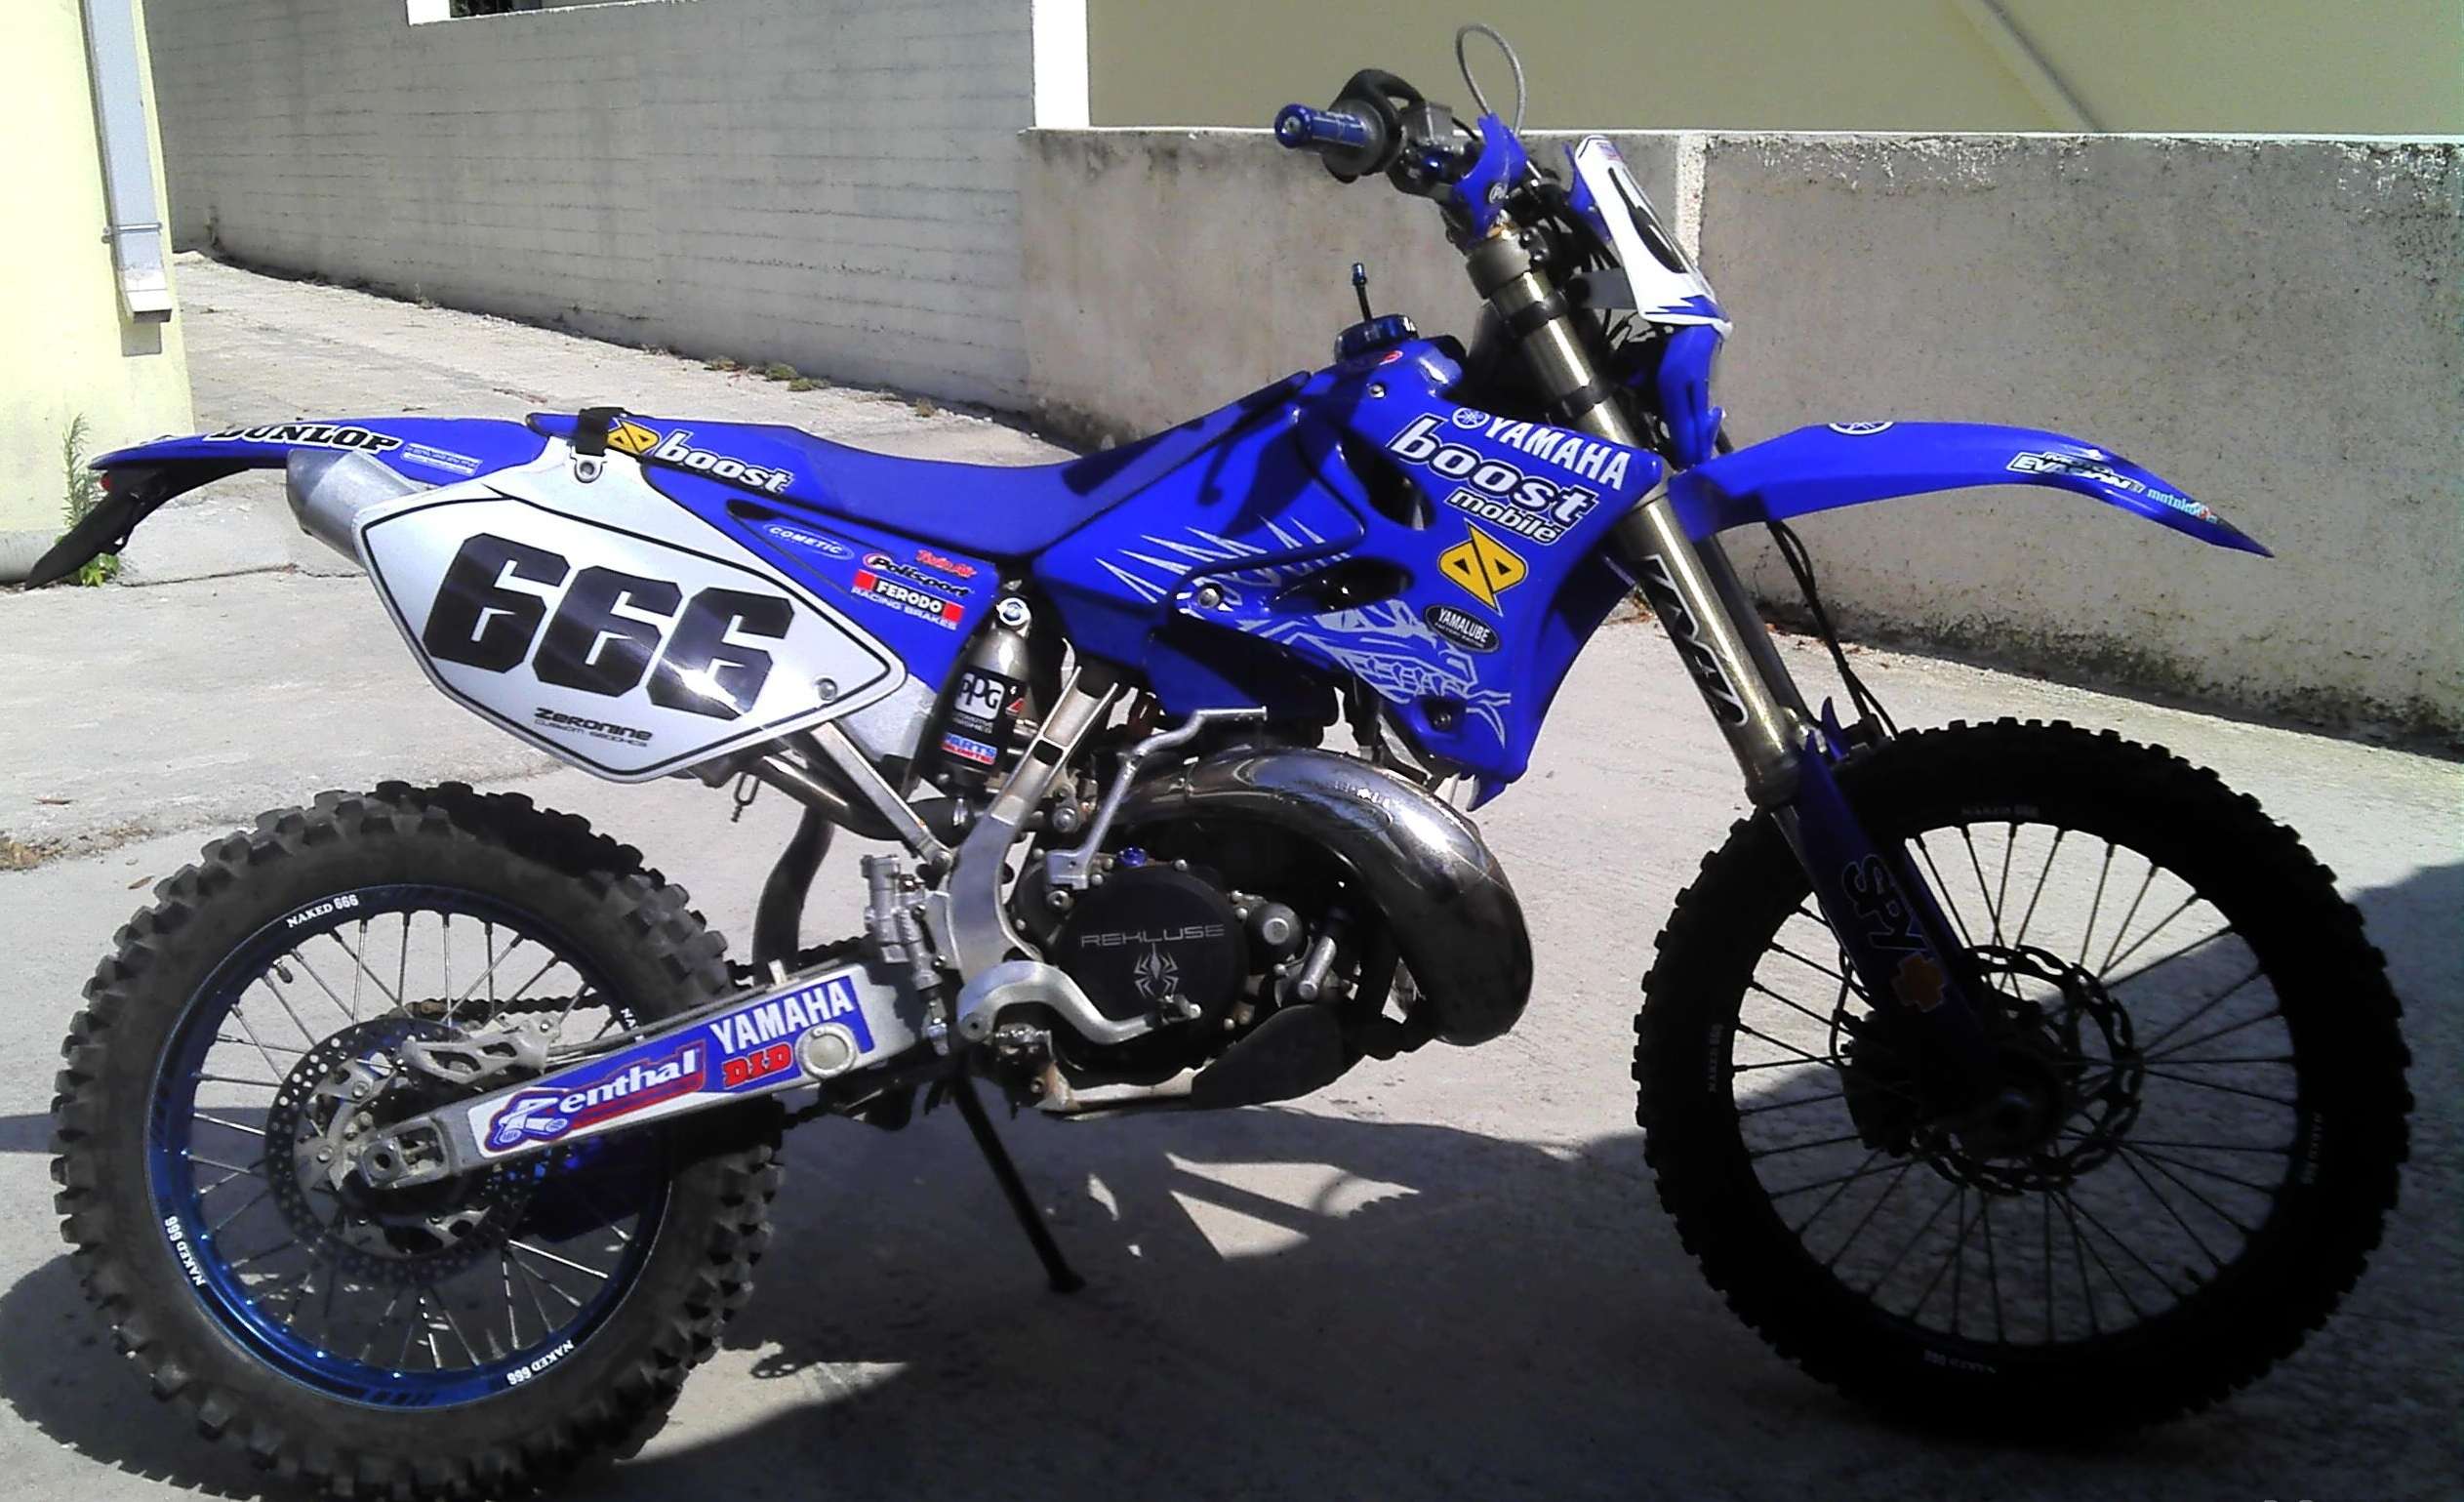 Yz 250 for sale autos post for 1995 yamaha yz250 for sale